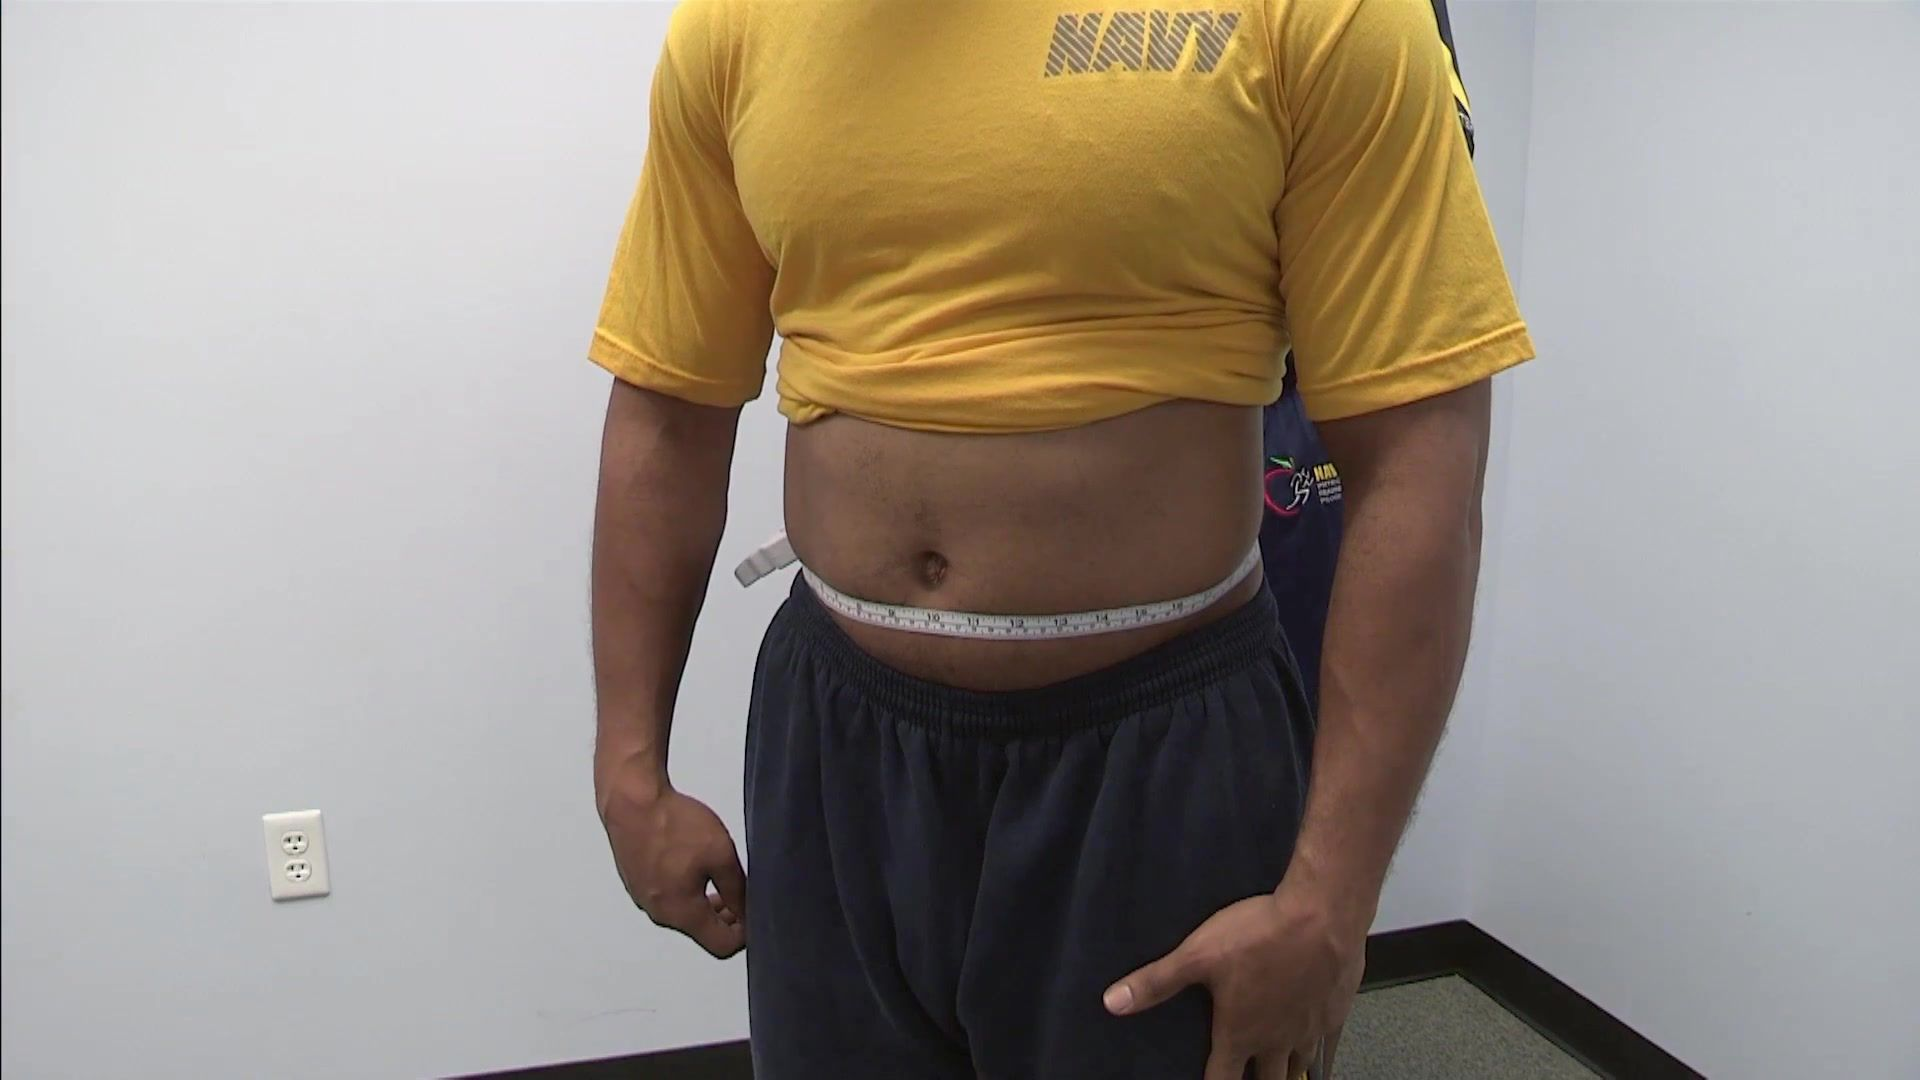 Body Fat Measurement System In The Military